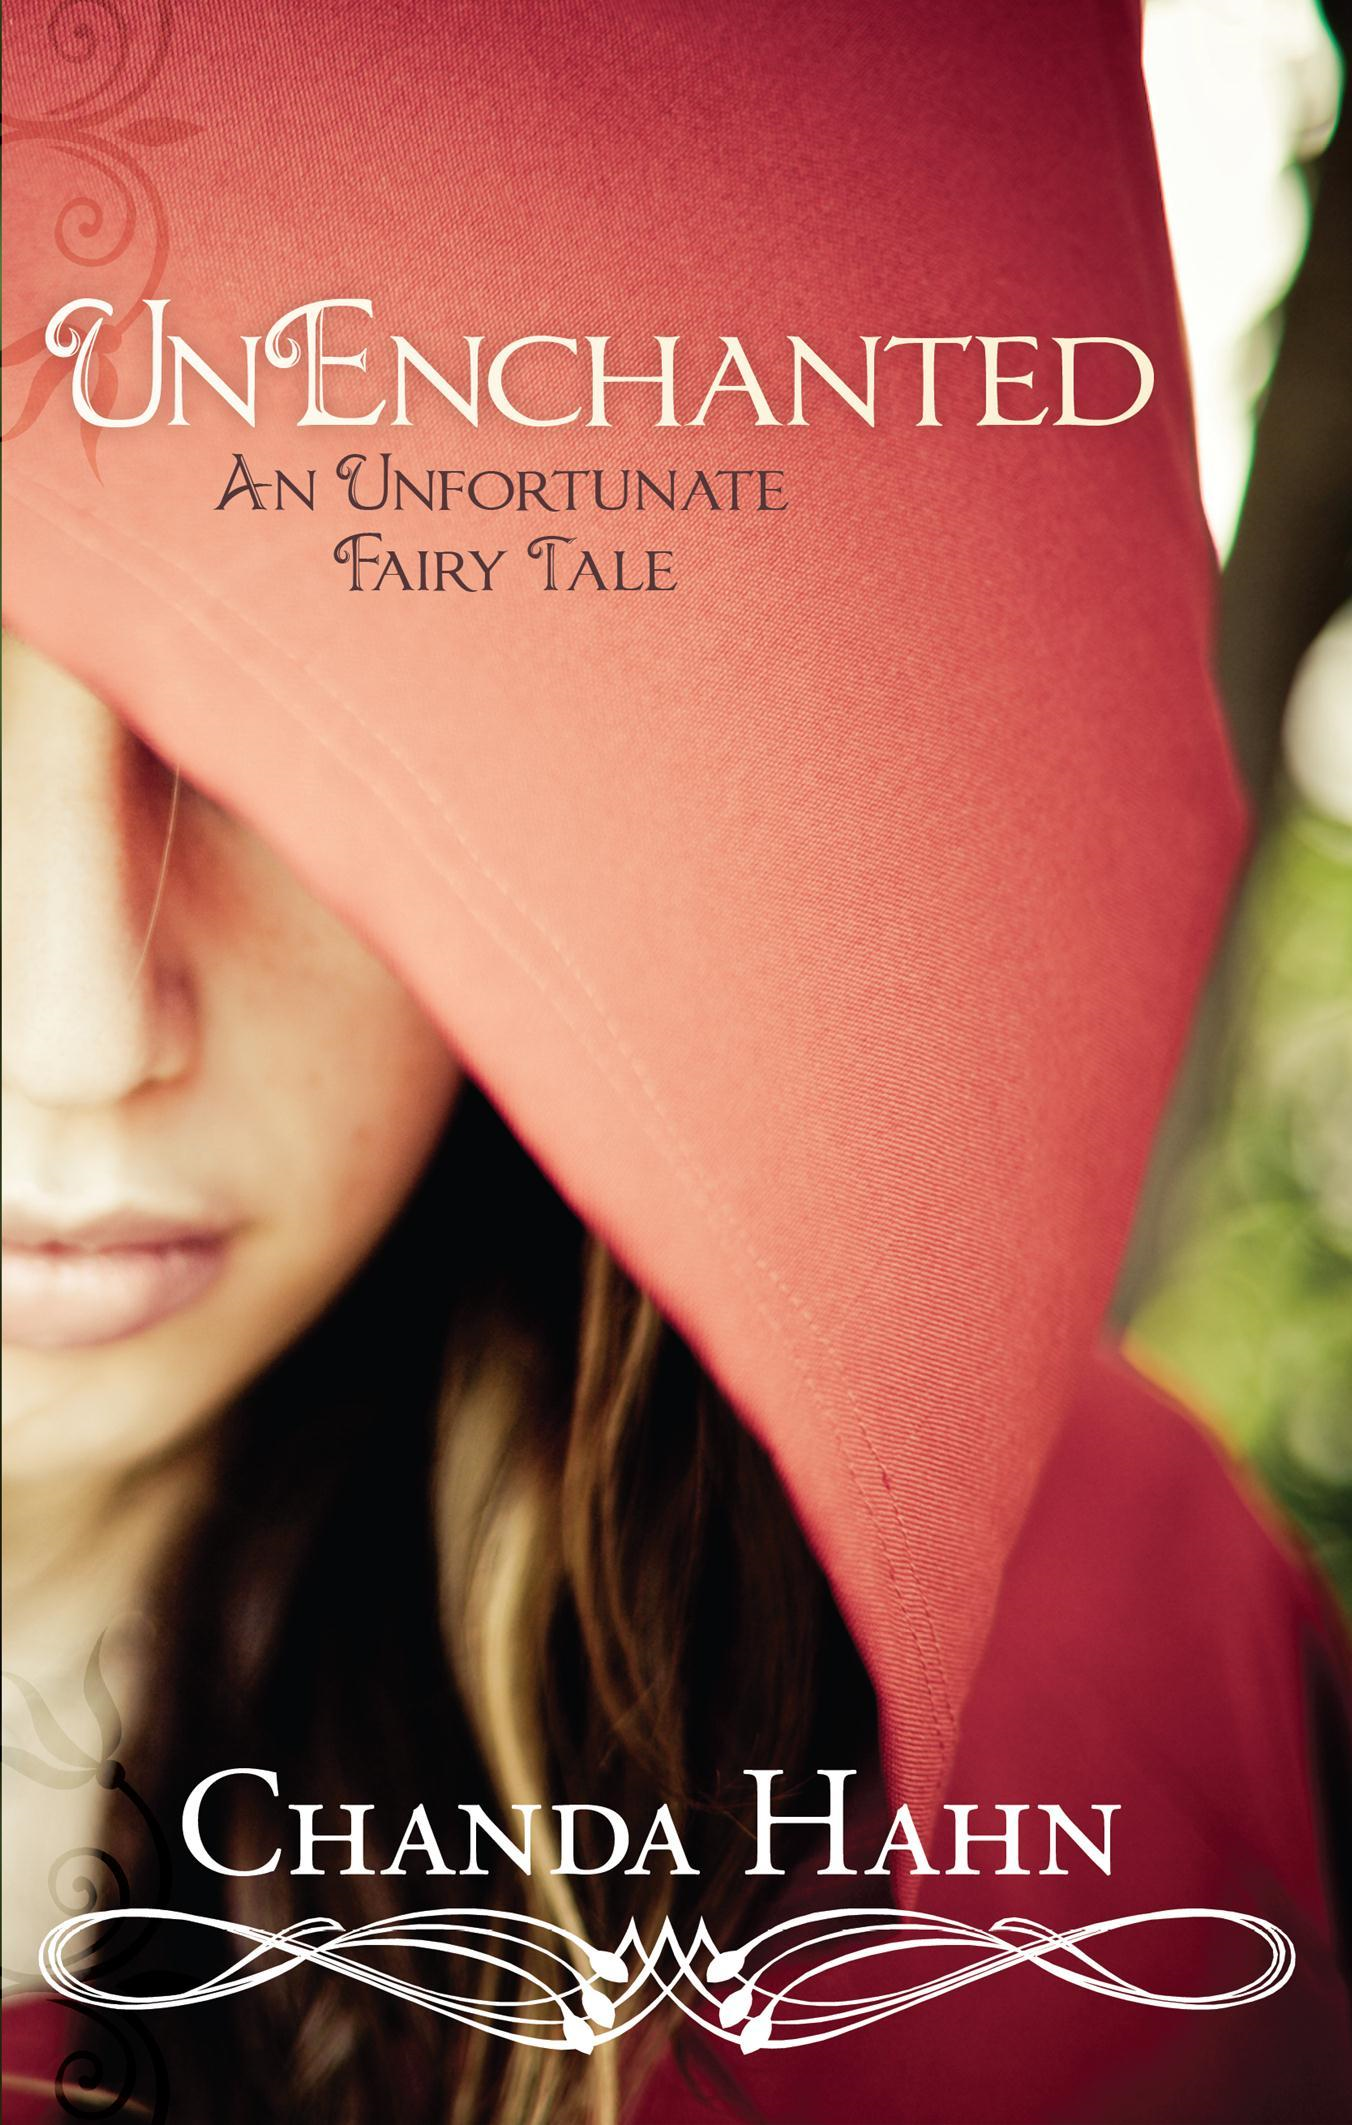 UnEnchanted By: Chanda Hahn